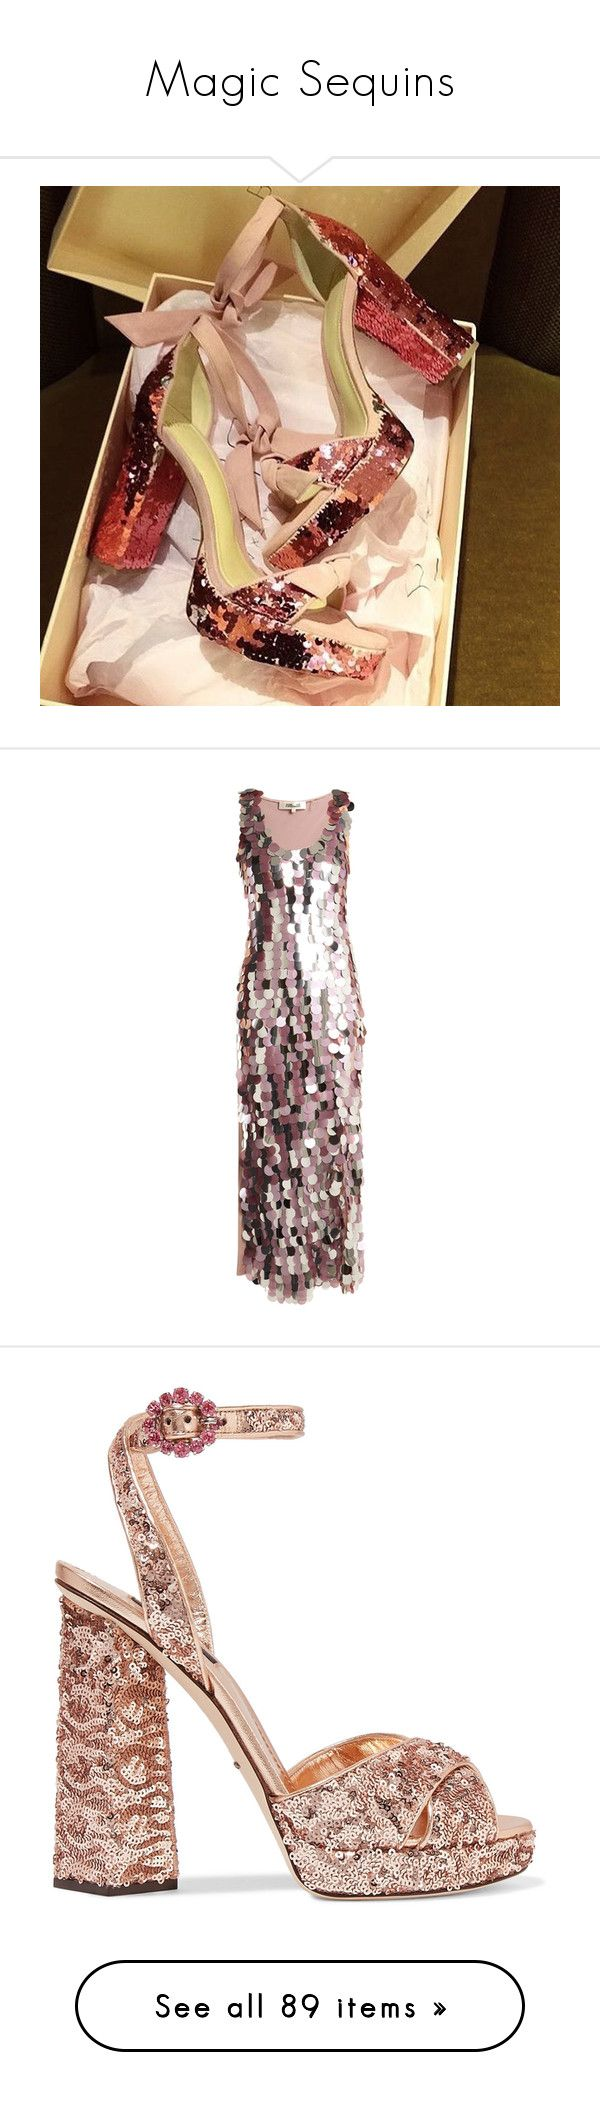 """""""Magic Sequins"""" by jacque-reid ❤ liked on Polyvore featuring home, rugs, dresses, silver, sequin embellished dress, metallic sequin dress, metallic dress, silk dress, pink metallic dress and shoes"""